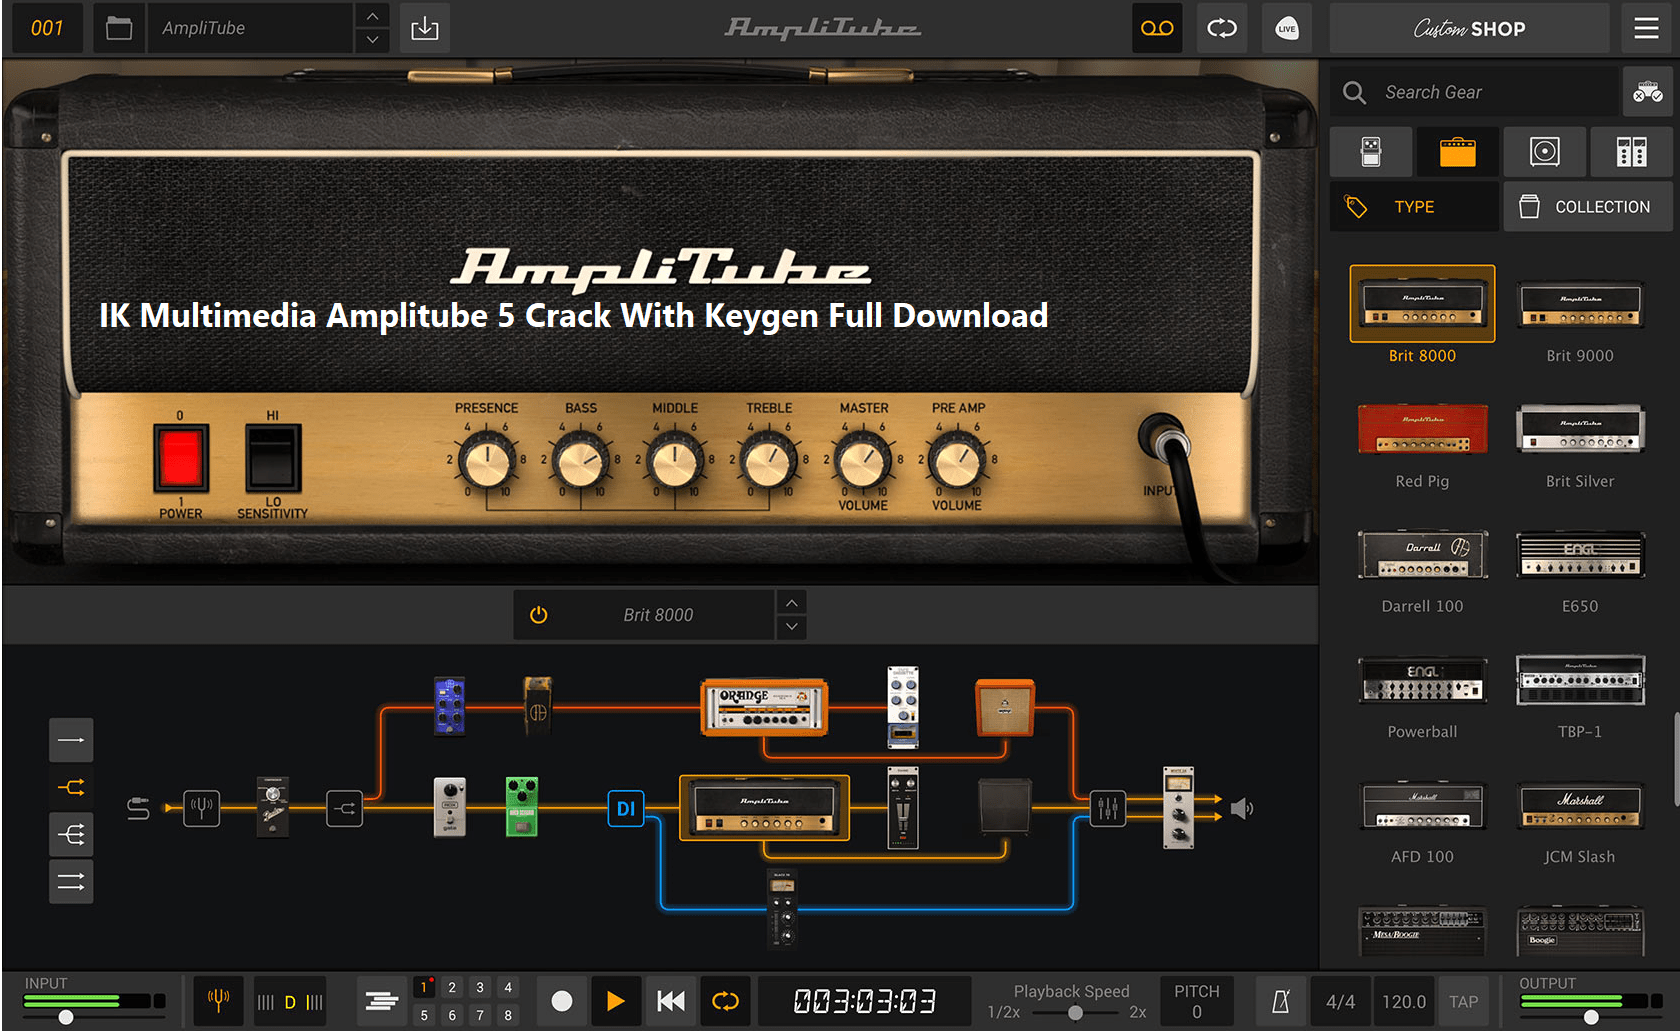 IK Multimedia Amplitube 5 Crack With Keygen Full Download [2021]